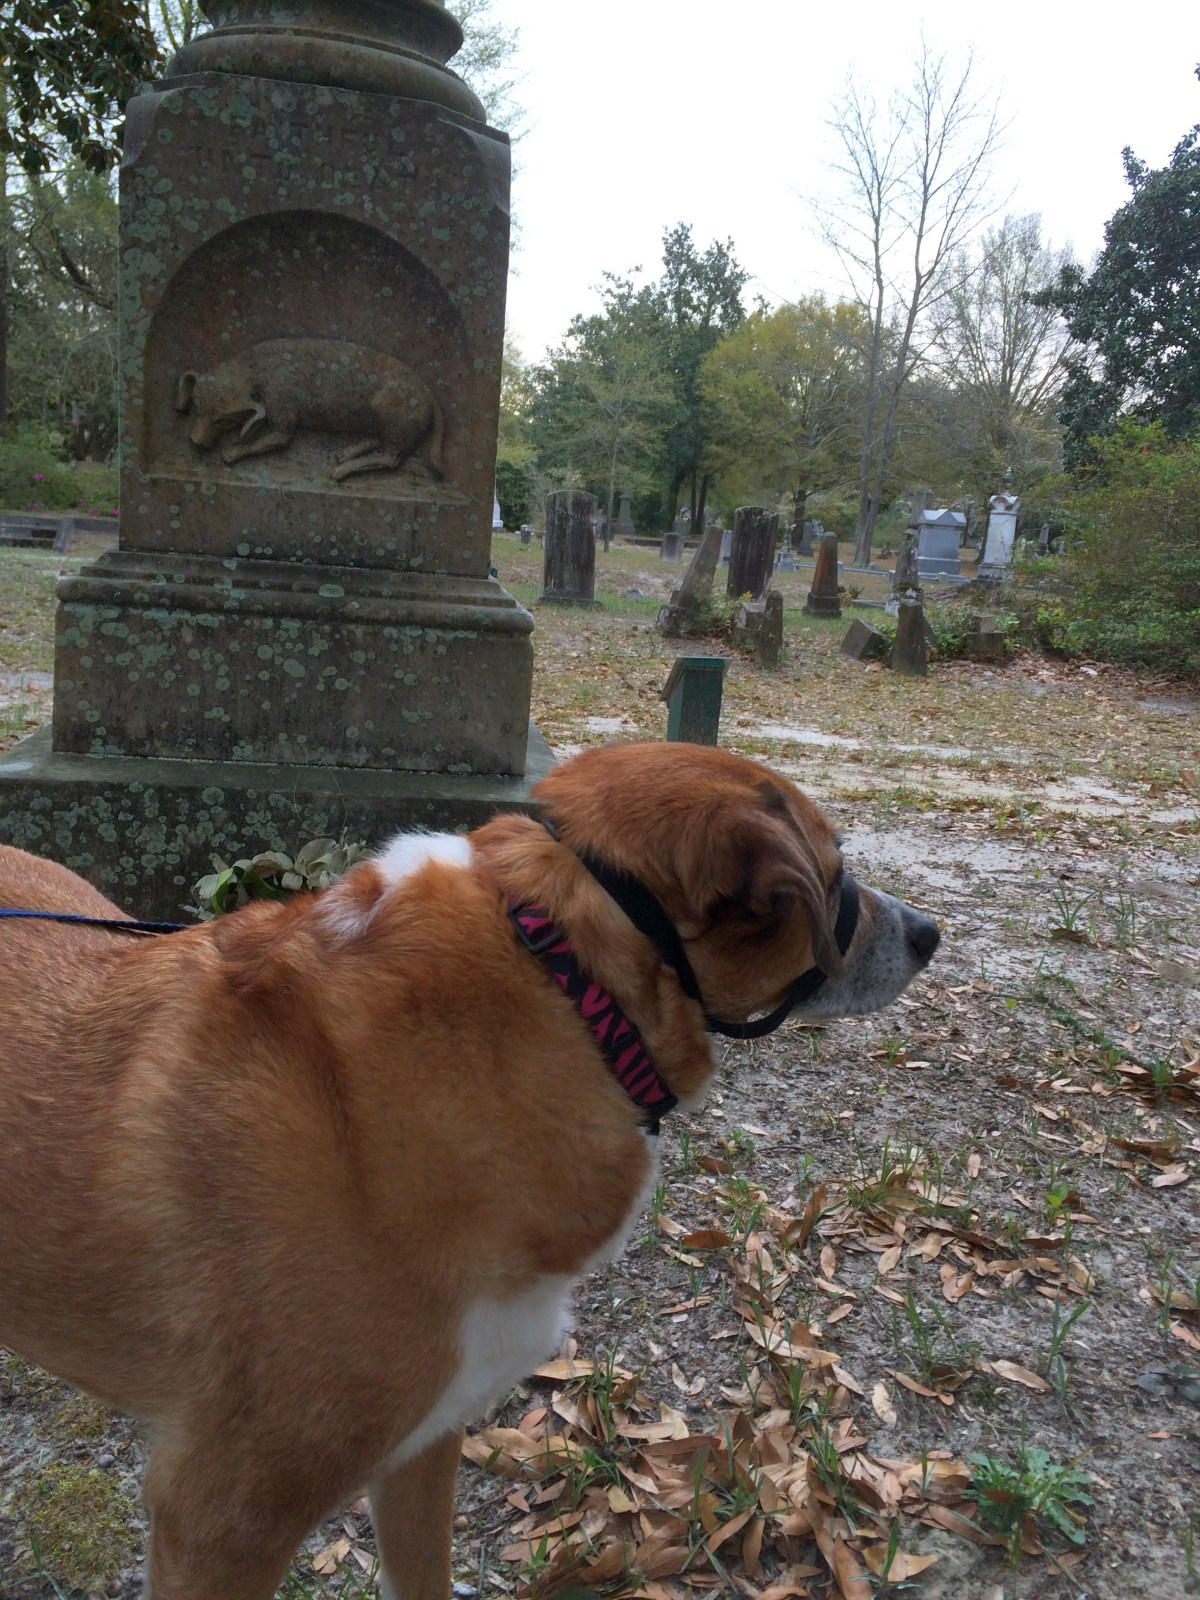 Back to Oakdale Cemetery